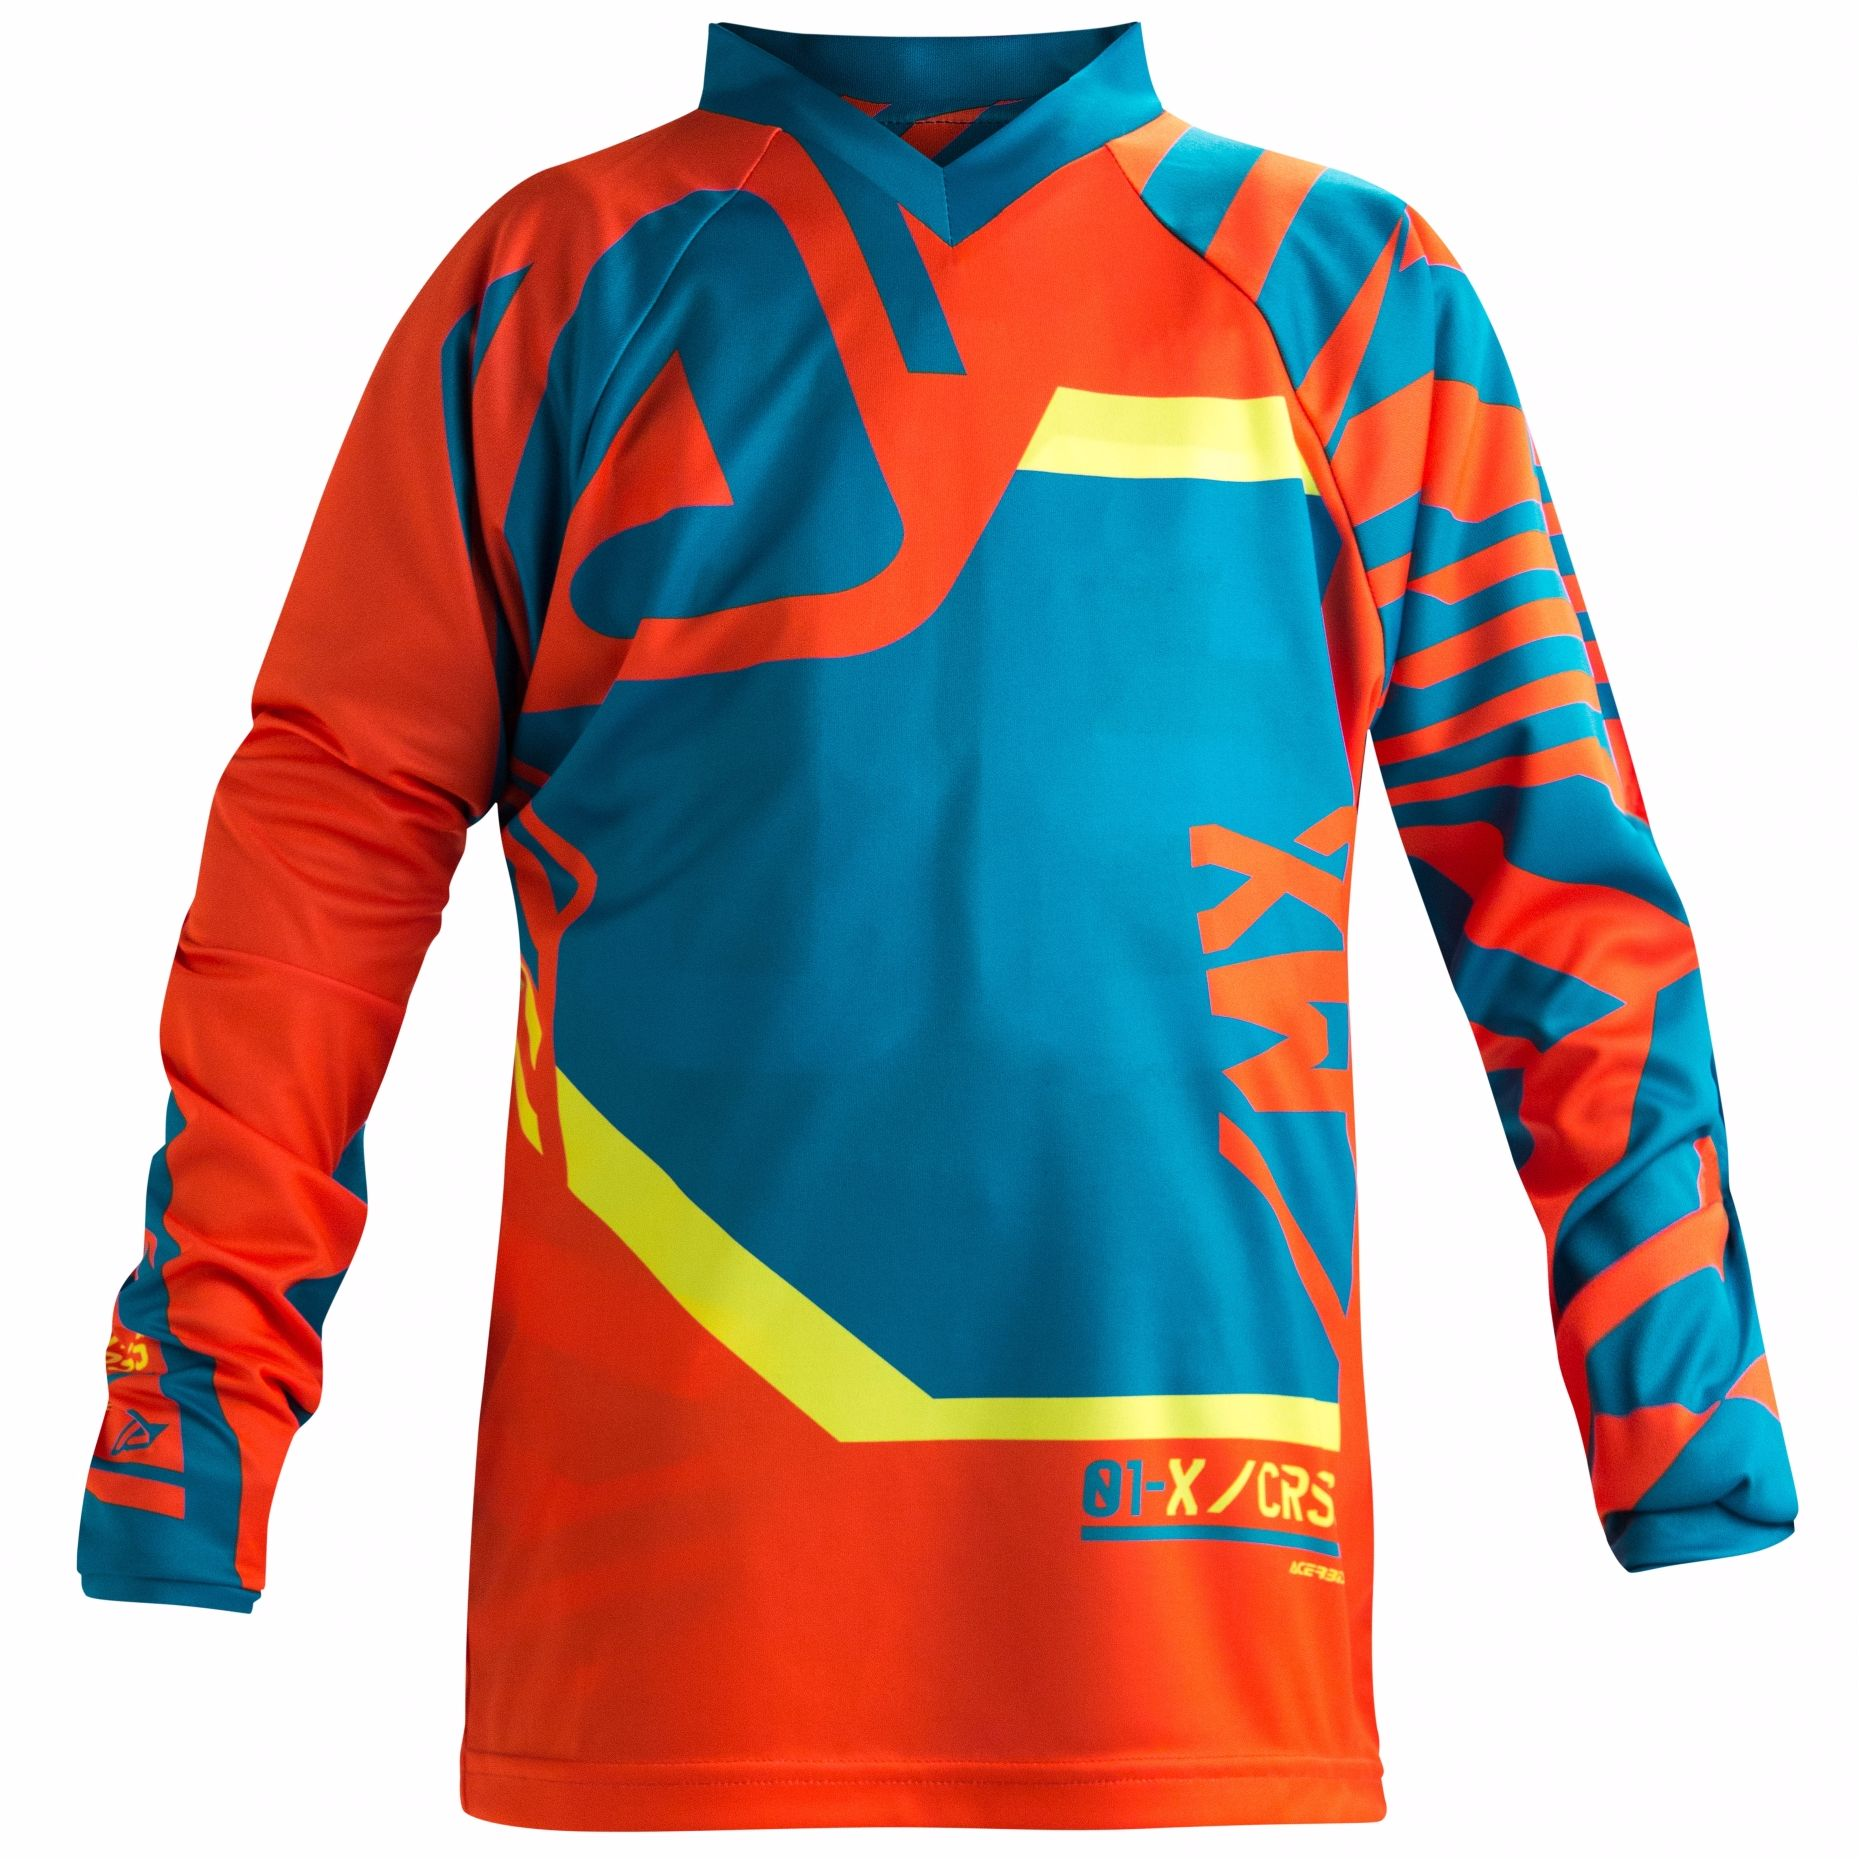 Maillot Cross Acerbis Fitcross Kid - Edition Limitee -